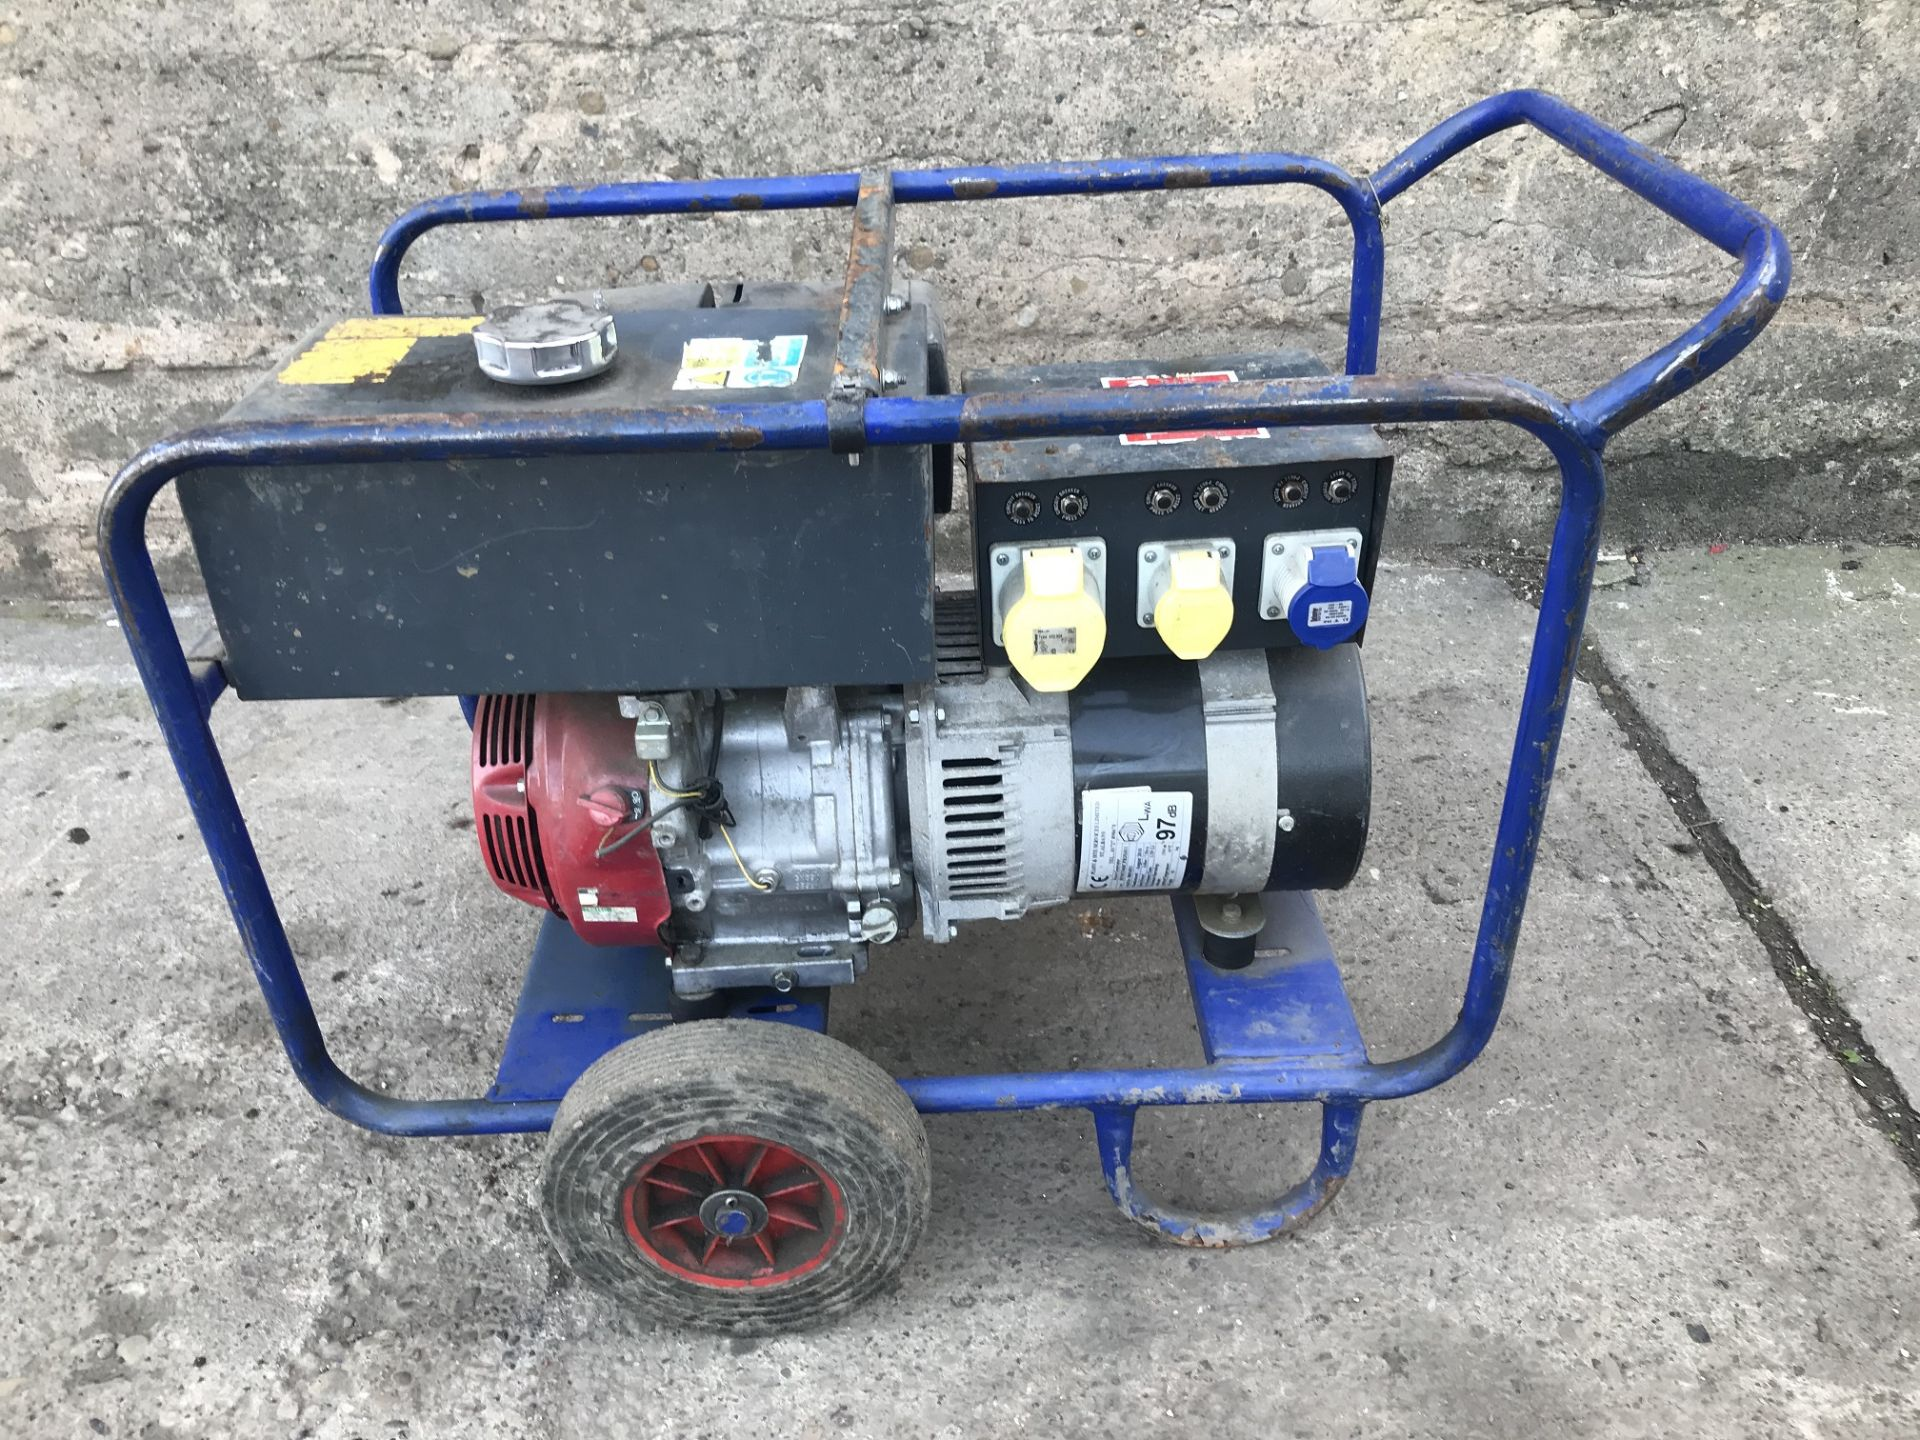 Lot 88 - 7.5 KVA PETROL GENERATOR, C/W HONDA GX 390 PETROL ENGINE 240/110V, YEAR 2010 *PLUS VAT*